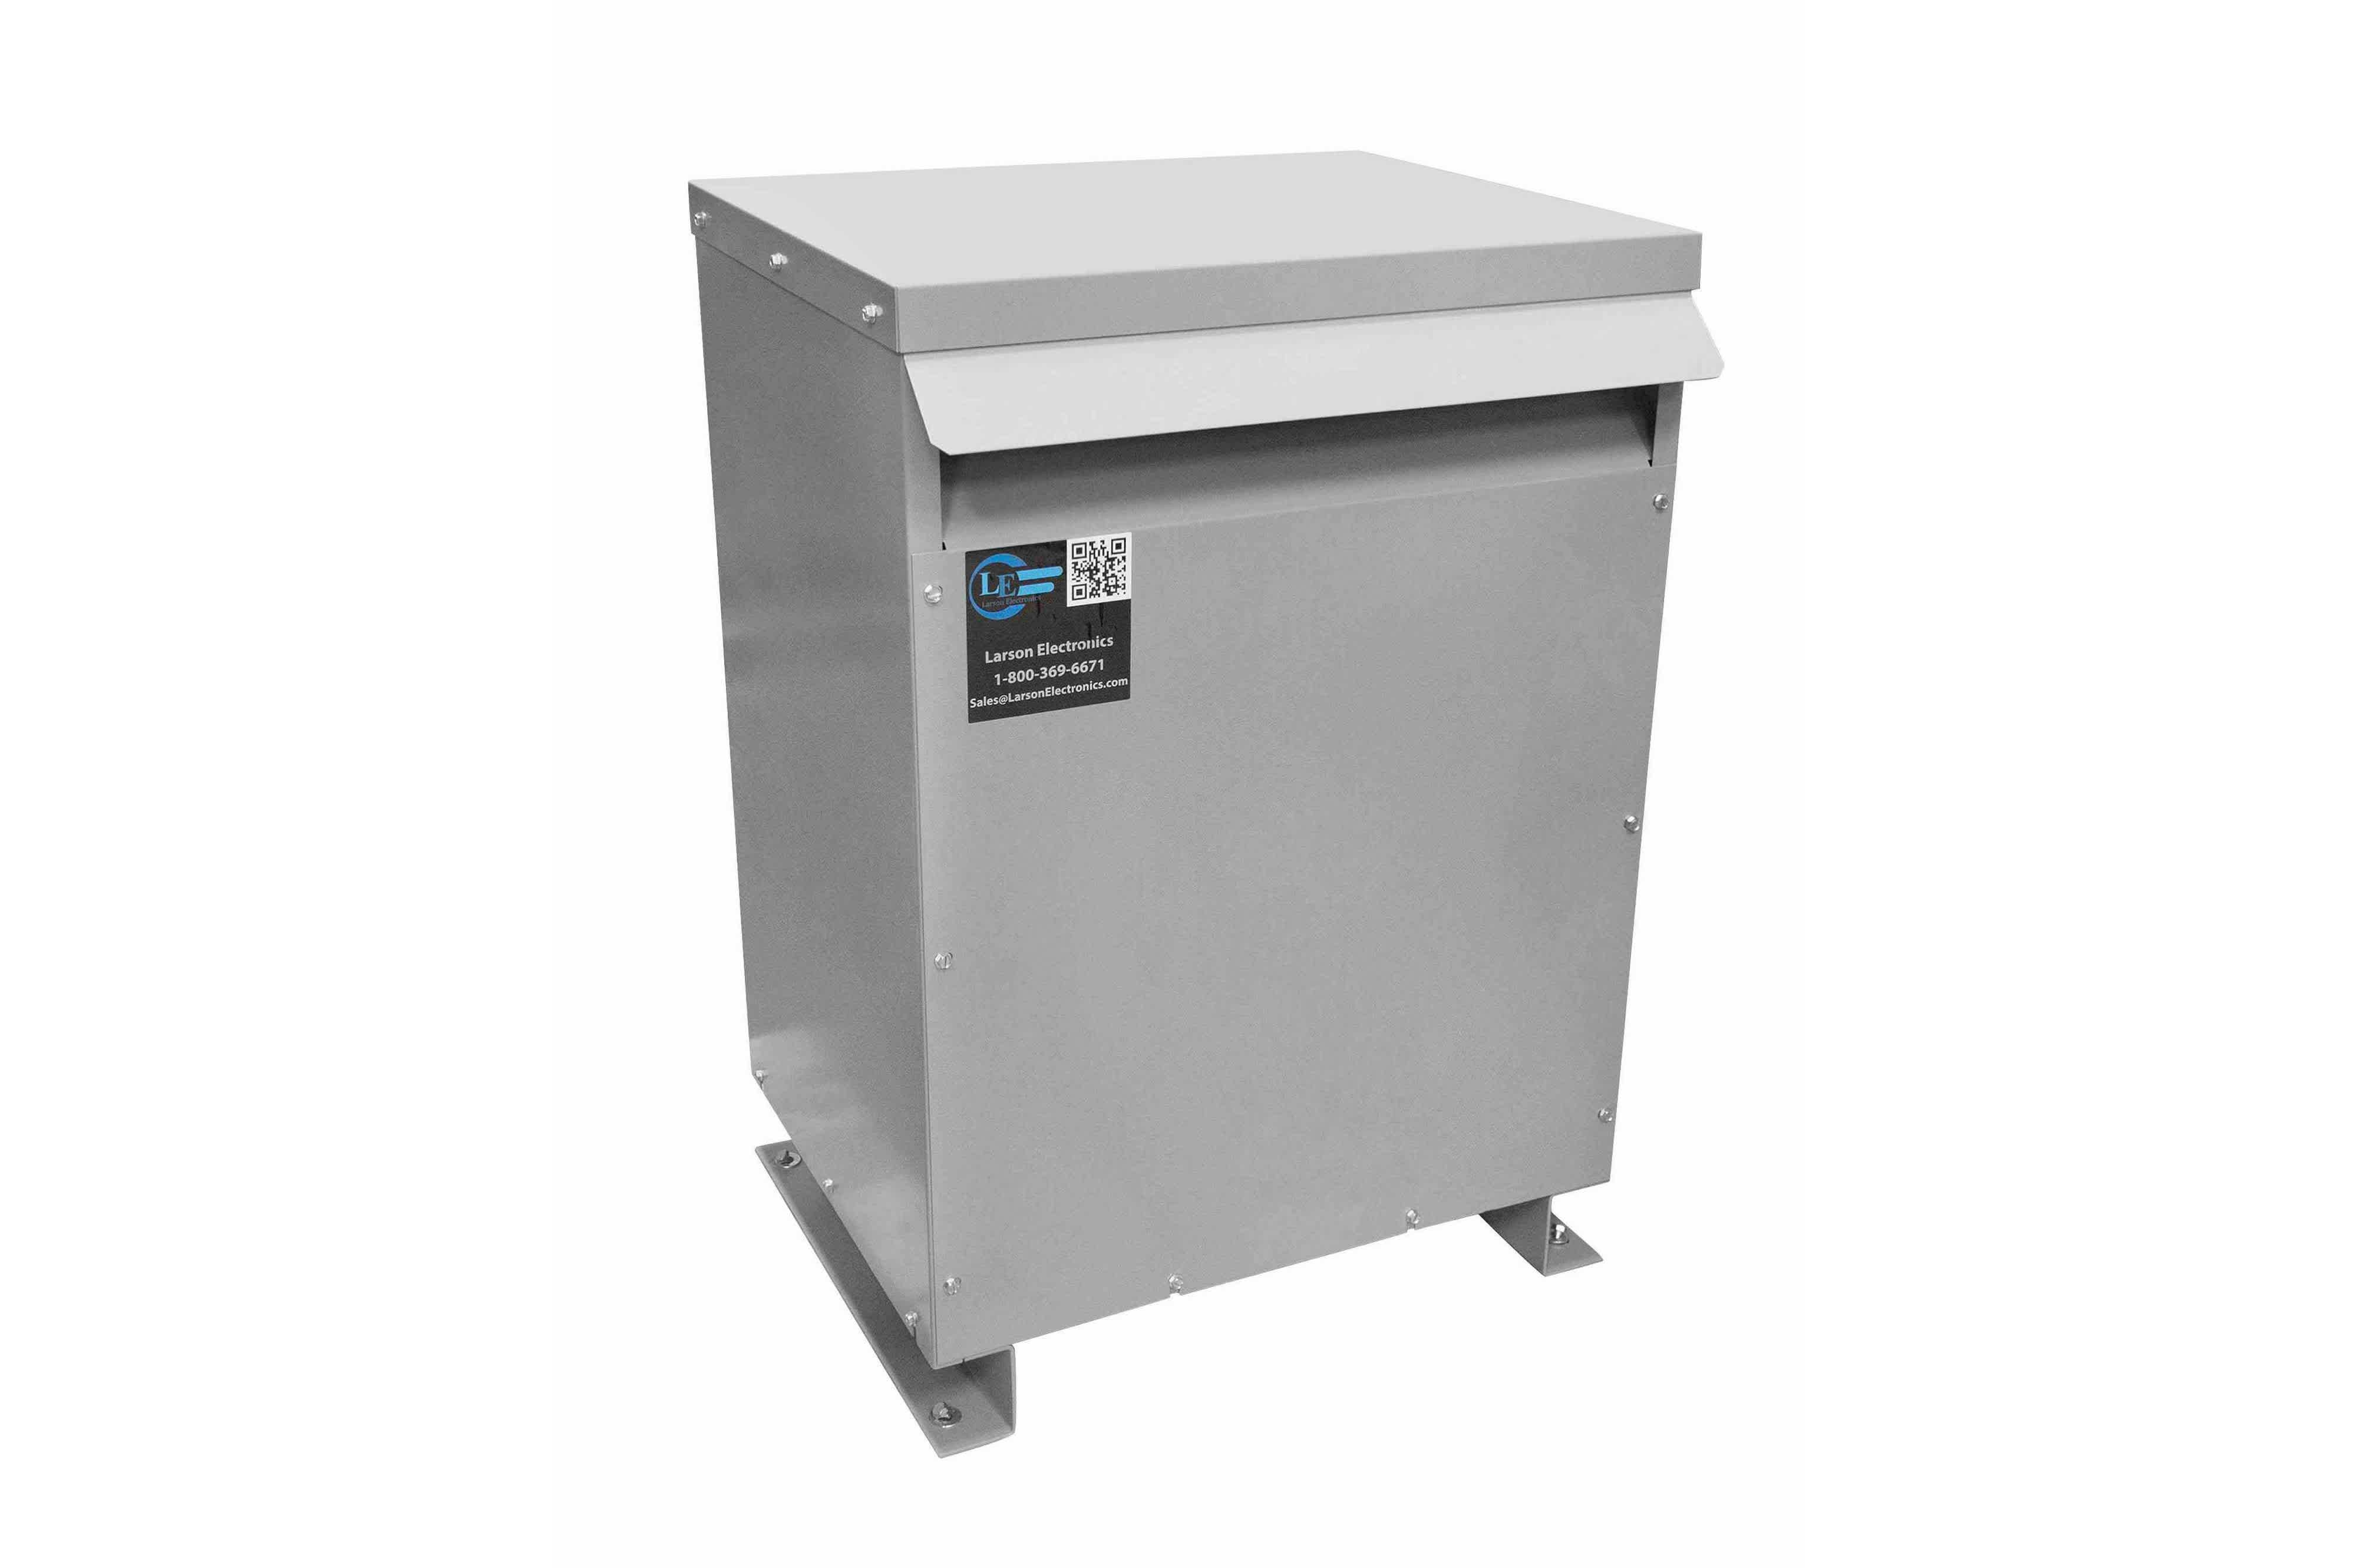 55 kVA 3PH Isolation Transformer, 440V Delta Primary, 208V Delta Secondary, N3R, Ventilated, 60 Hz